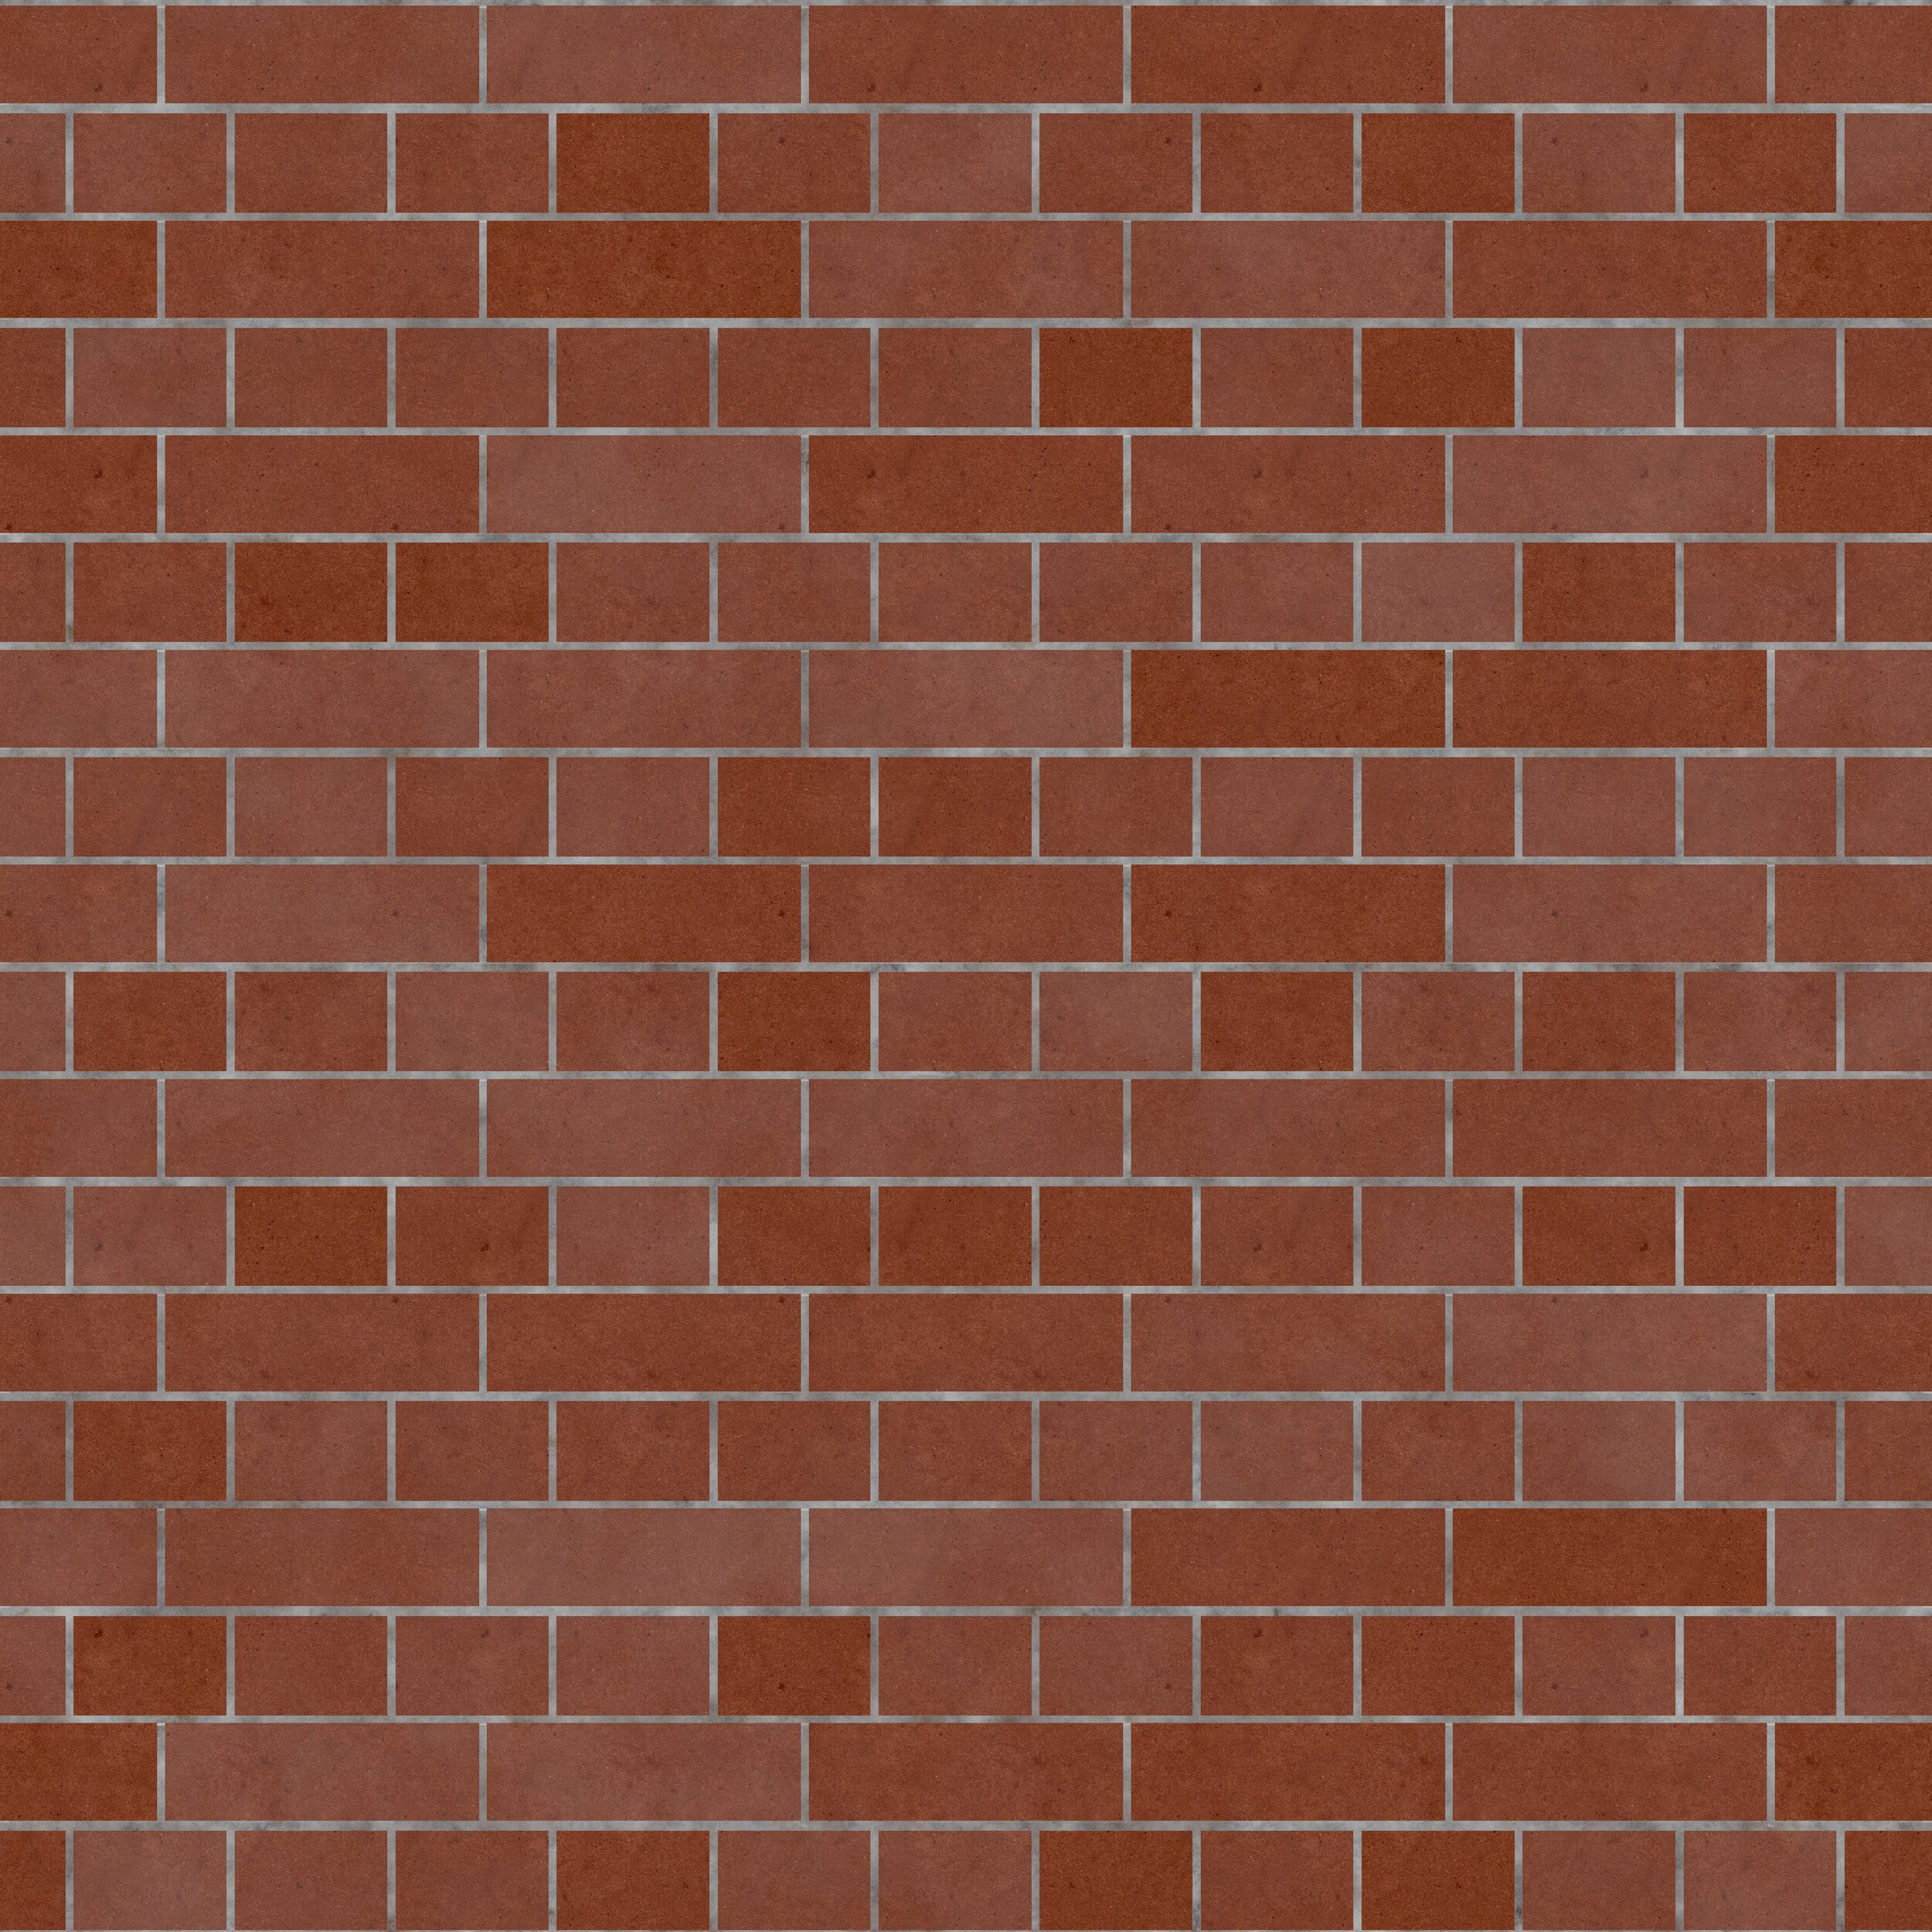 Bricks_AI_01C_Red_COLOR.jpg